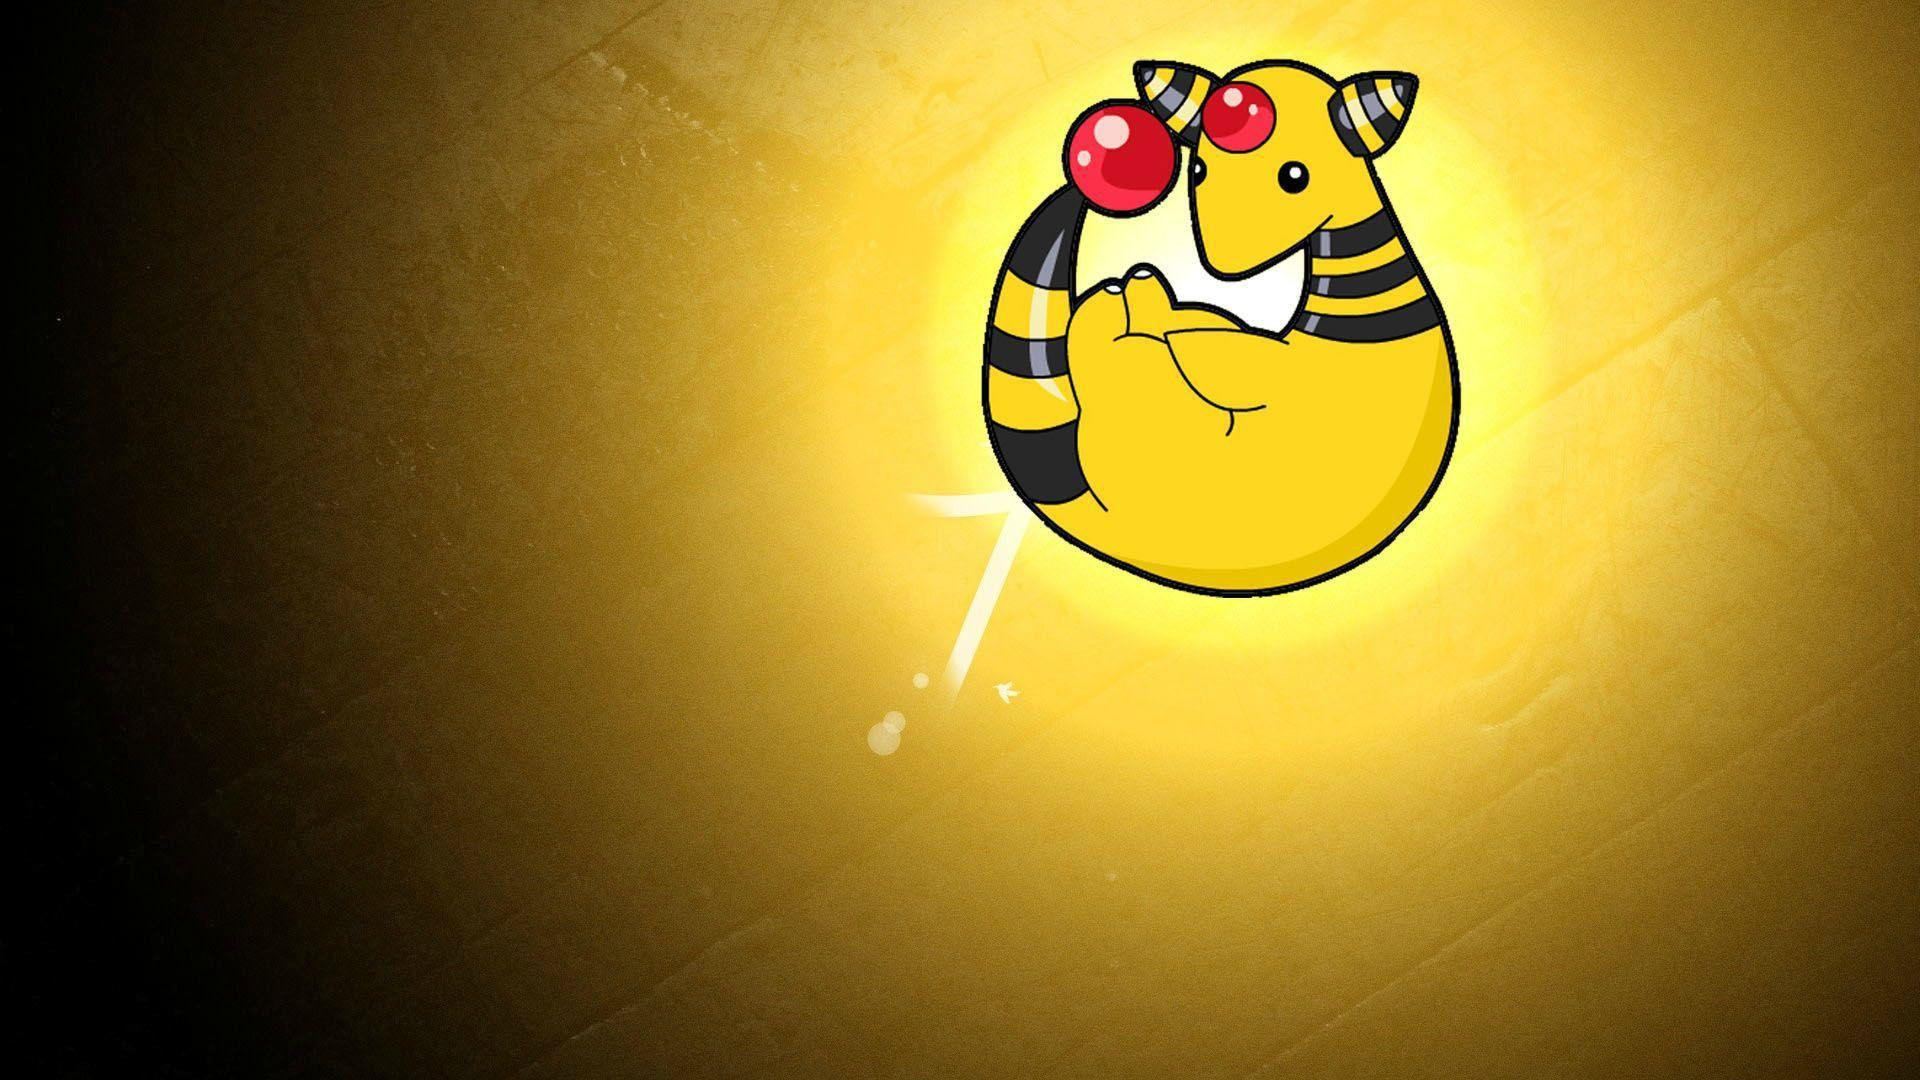 Ampharos Wallpapers Image Photos Pictures Backgrounds